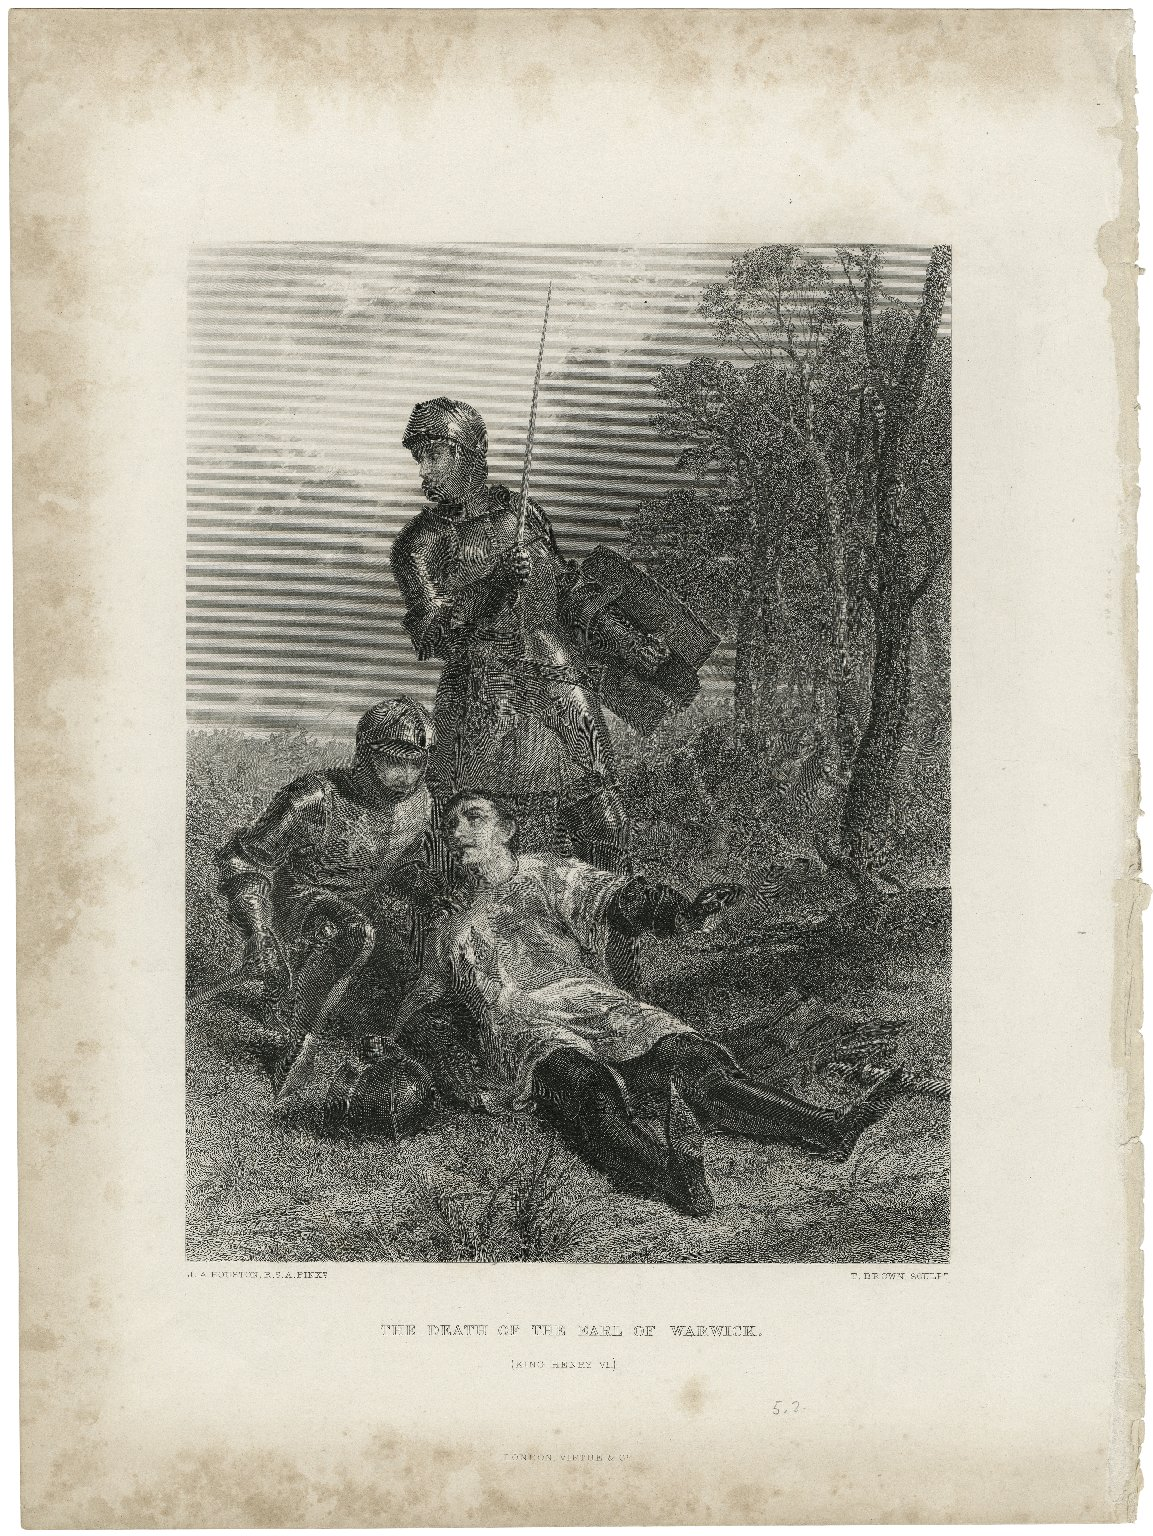 The death of the Earl of Warwick (King Henry VI) [Part III, Act V, scene 2] [graphic] / J. A. Houston 1872 ; T. Brown, sculpt.